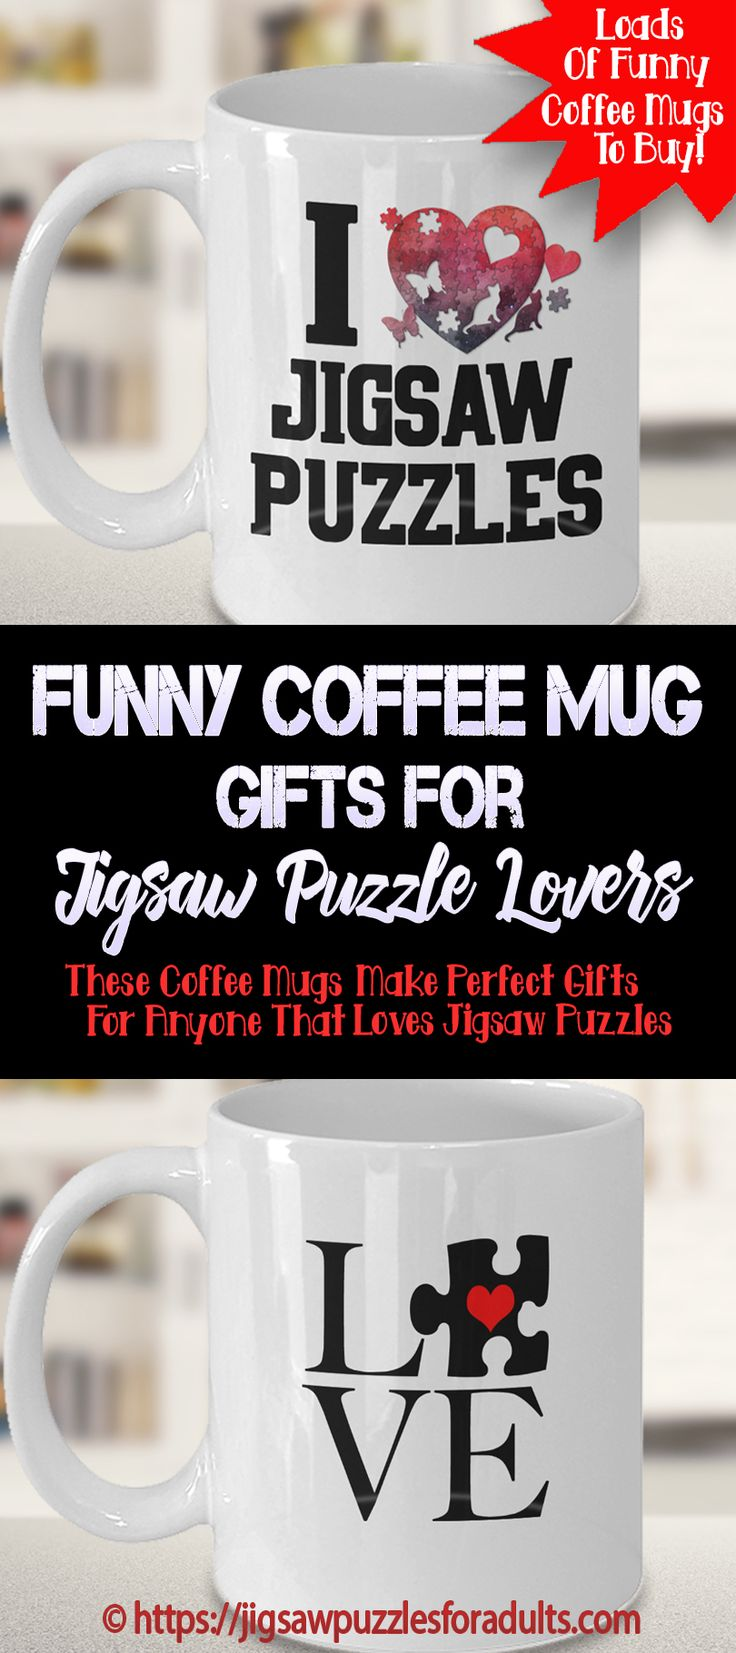 Are you looking for some great Gifts For Jigsaw Puzzle Lovers? You'll find some unique Coffee Mug Gift Ideas for people who love working on jigsaw puzzles. There of plenty of inspirational and coffee or tea mugs that will bring a smile to your face no mater what mood you are in. These jigsaw puzzle coffee mugs are one of a kind!